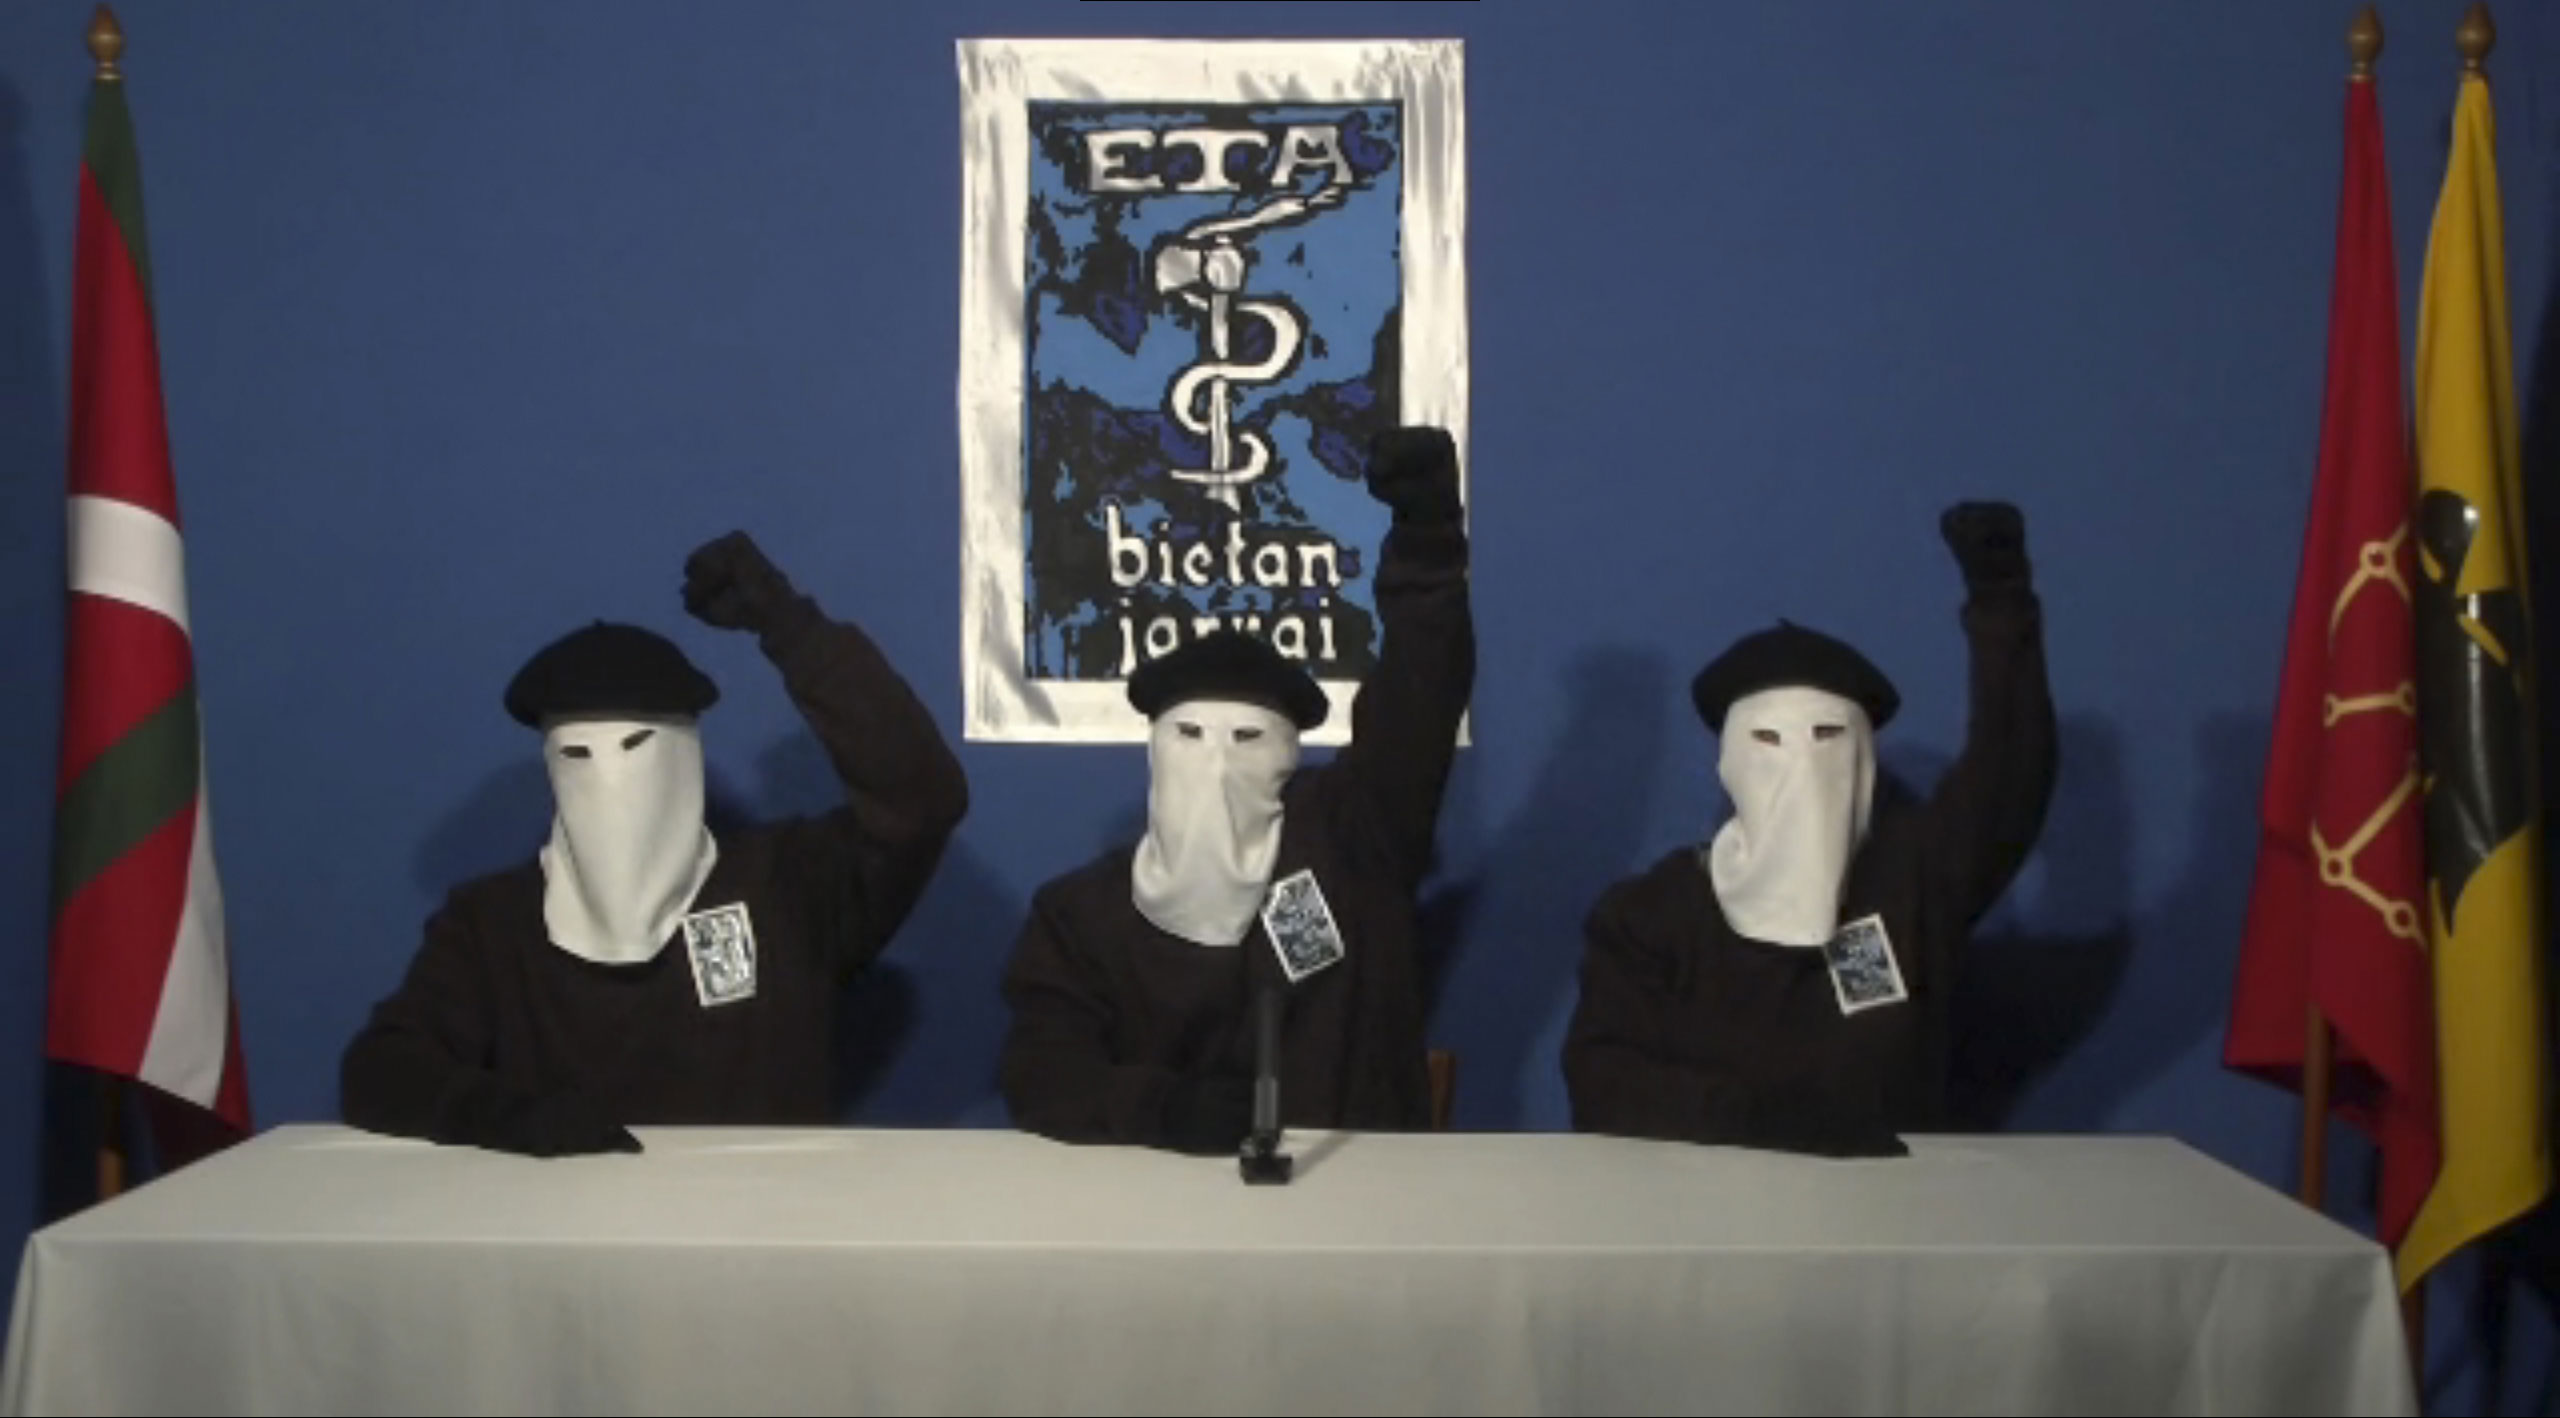 Three members of Basque separatist group ETA call for a definitive end to 50 years of armed struggle, which has cost the lives of at least 850 people, in this still image taken from an undated video published on the website of Basque language newspaper Ga